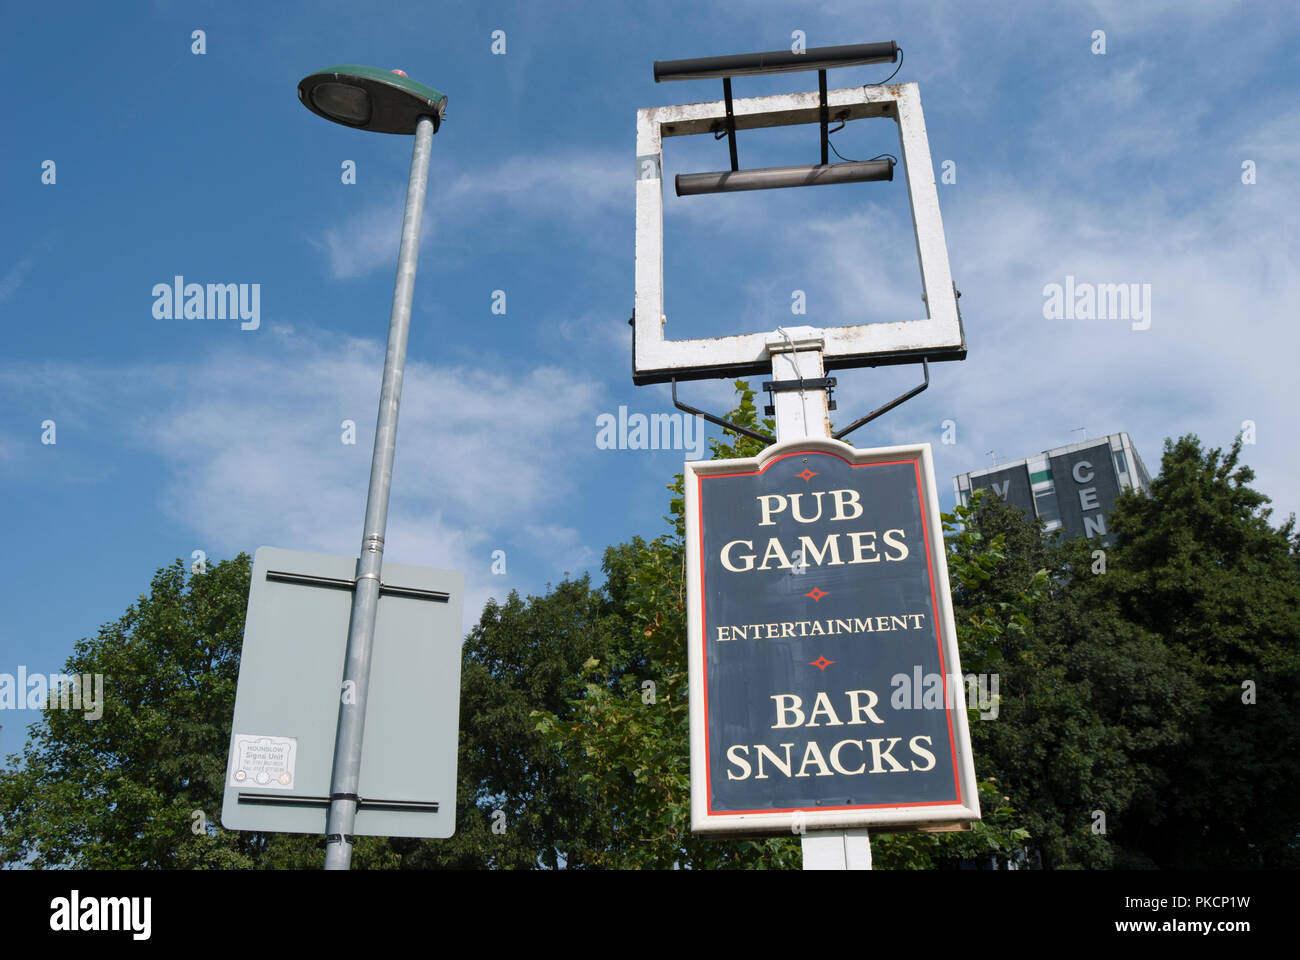 empty frame for a pub sign above pub games and bar snacks sign, and rear side of road sign in hounslow, middlesex, england - Stock Image